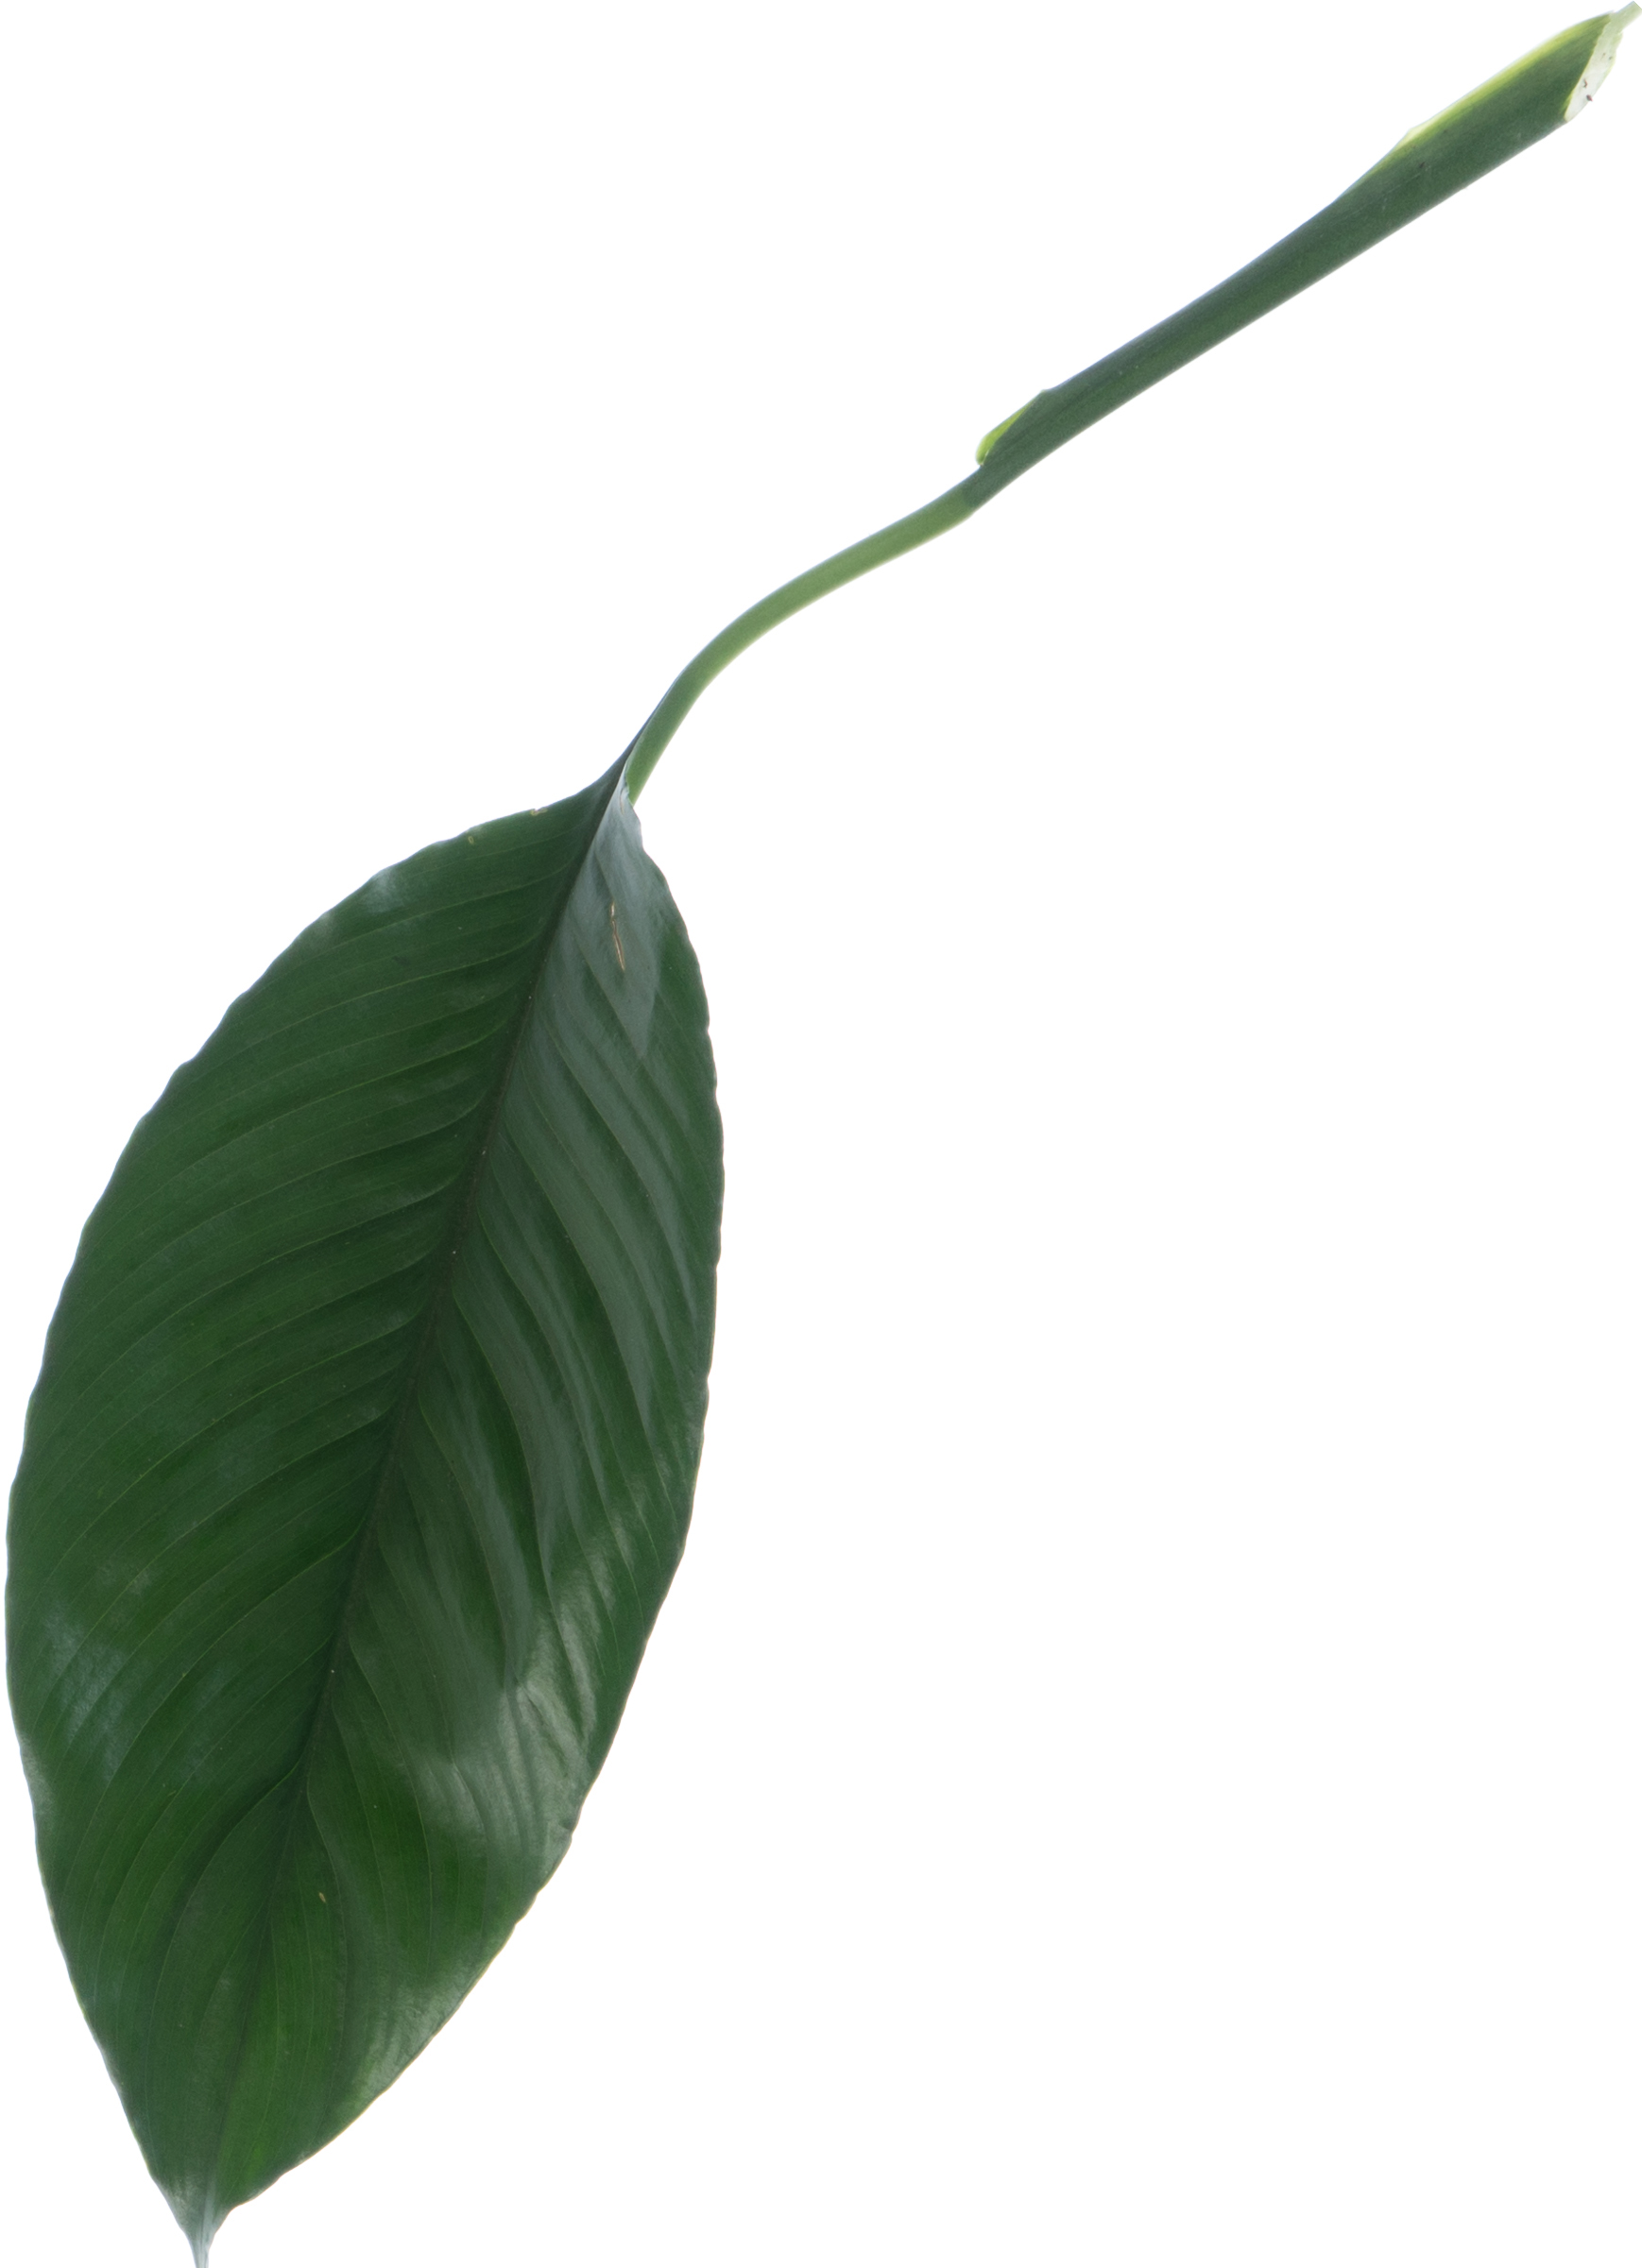 Big tropical plant leaf